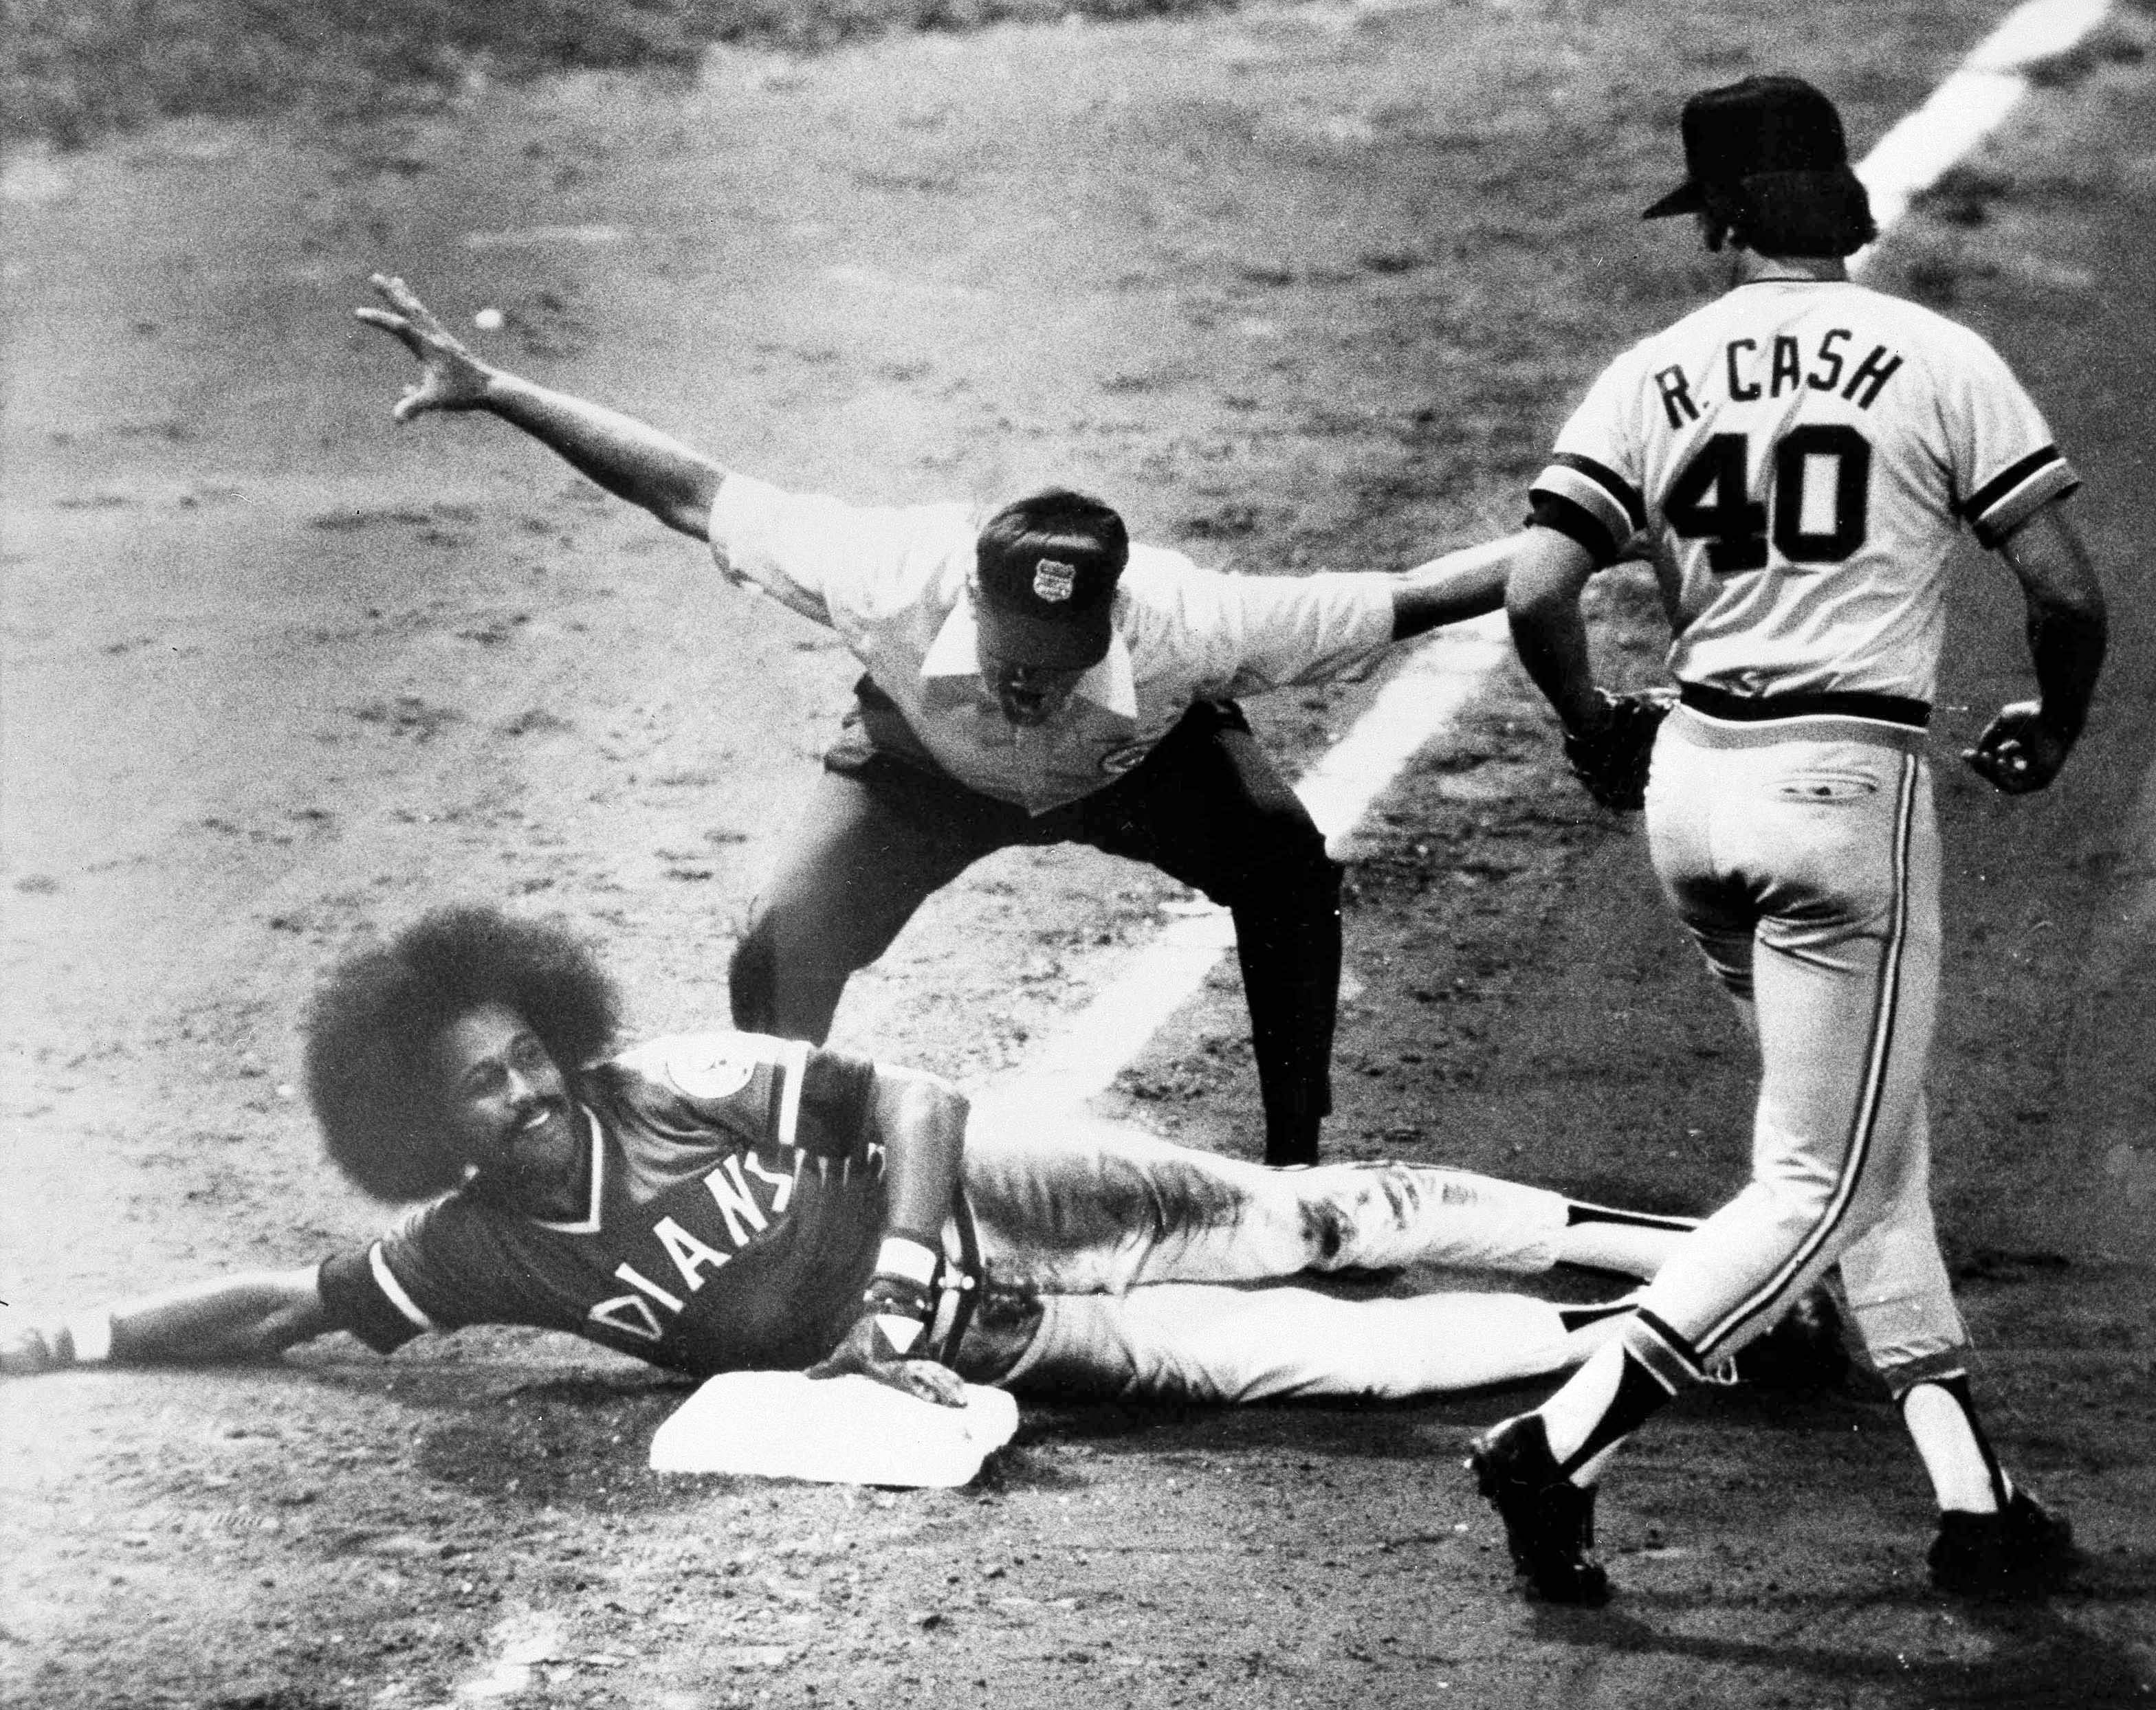 Oscar Gamble, an outfielder who hit 200 home runs -- including 31 homers for the White Sox in 1977 -- over 17 major league seasons, died Wednesday of a rare tumor of the jaw. He was 68.